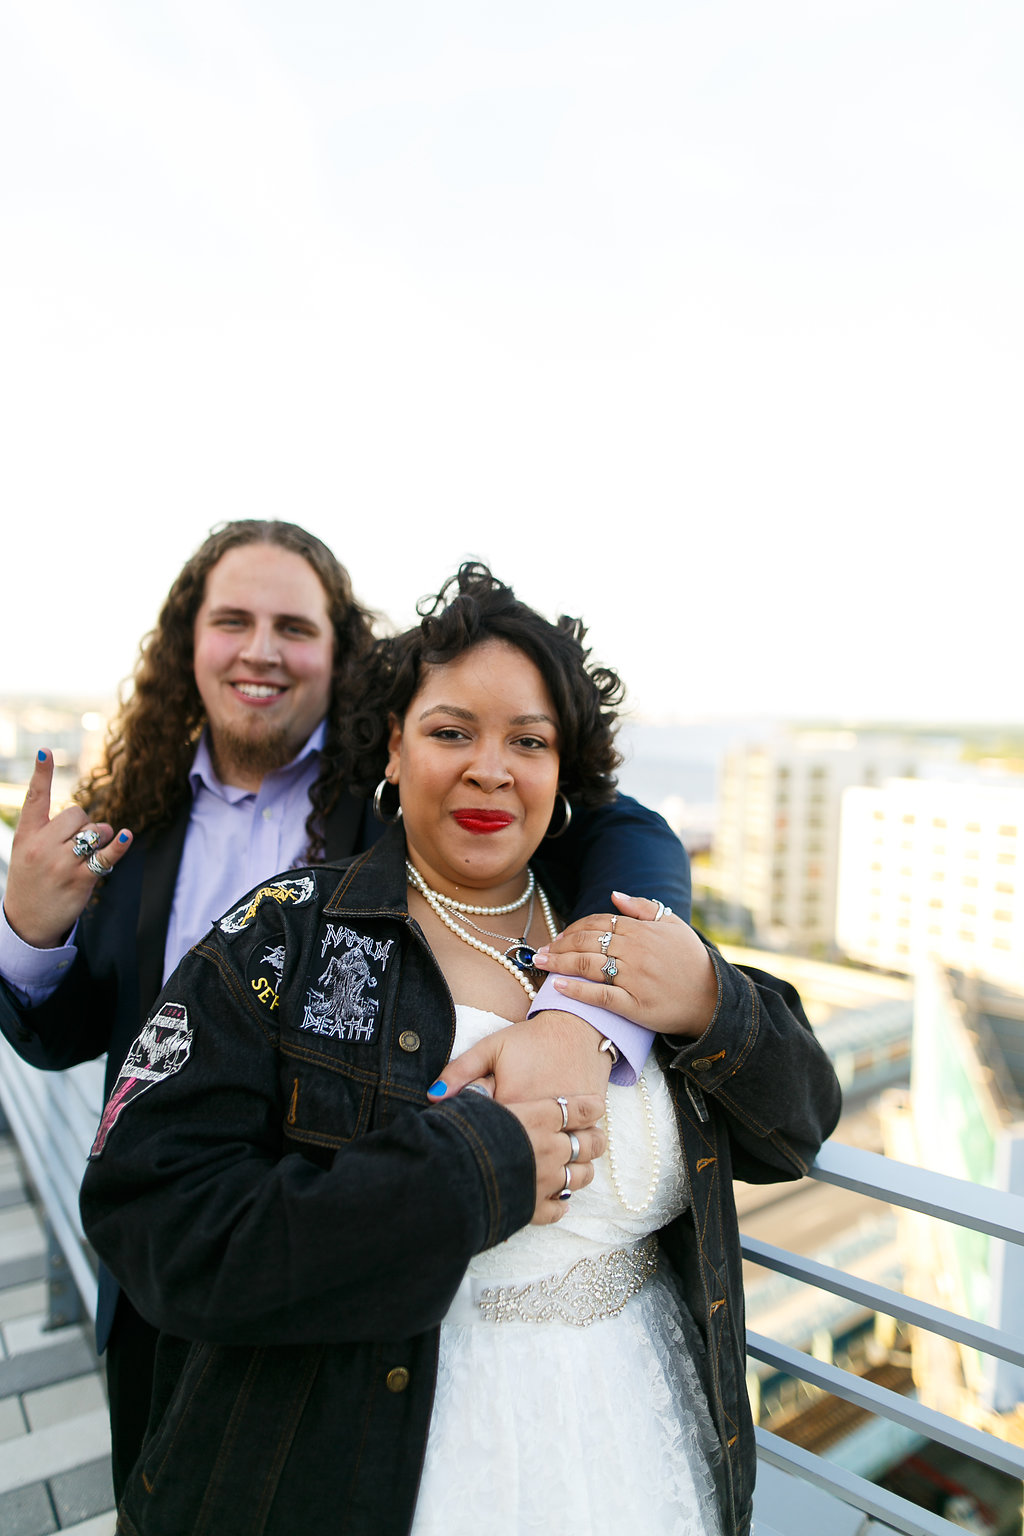 Old City Philly Rooftop Elopement 50.jpg